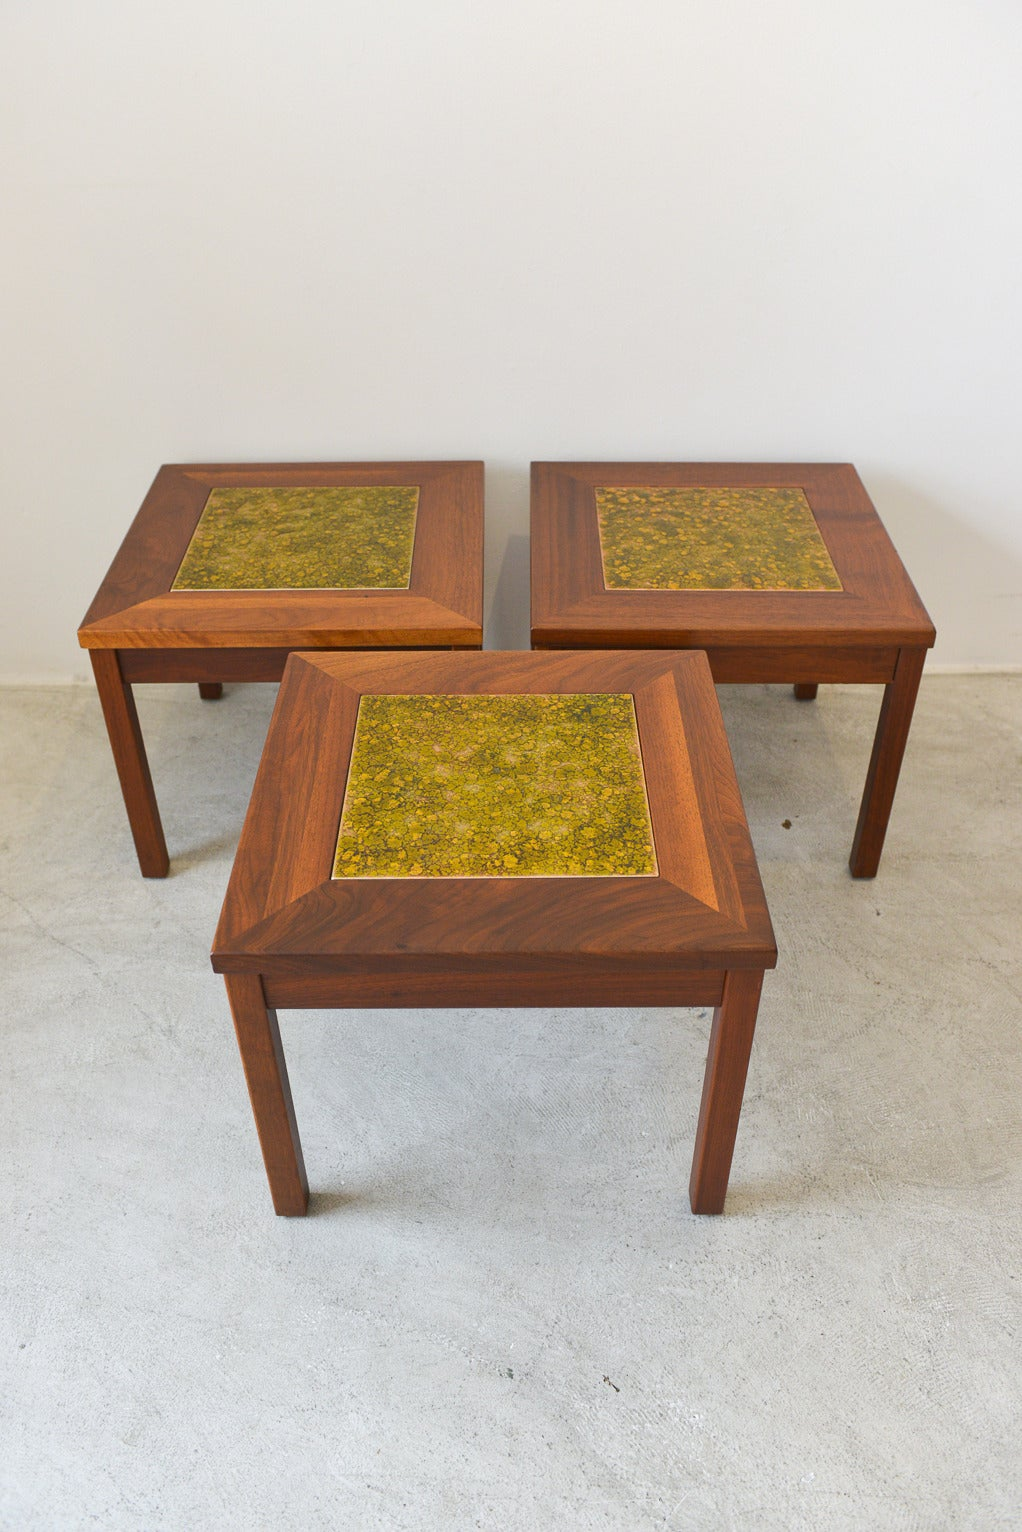 Enameled Copper Tile Tables by Brown Saltman at 1stdibs